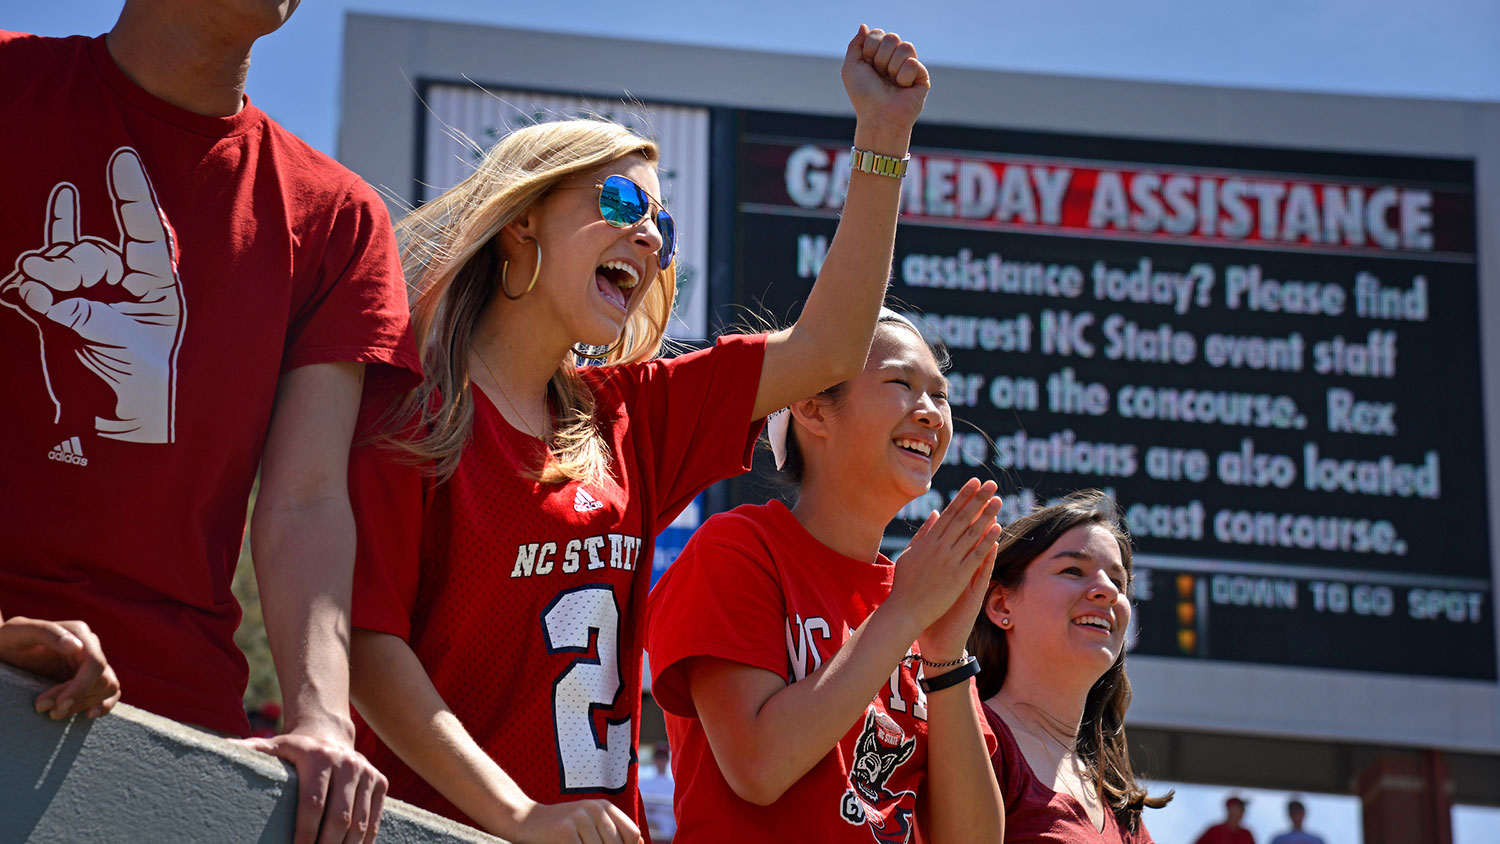 Women NC State athletics fans